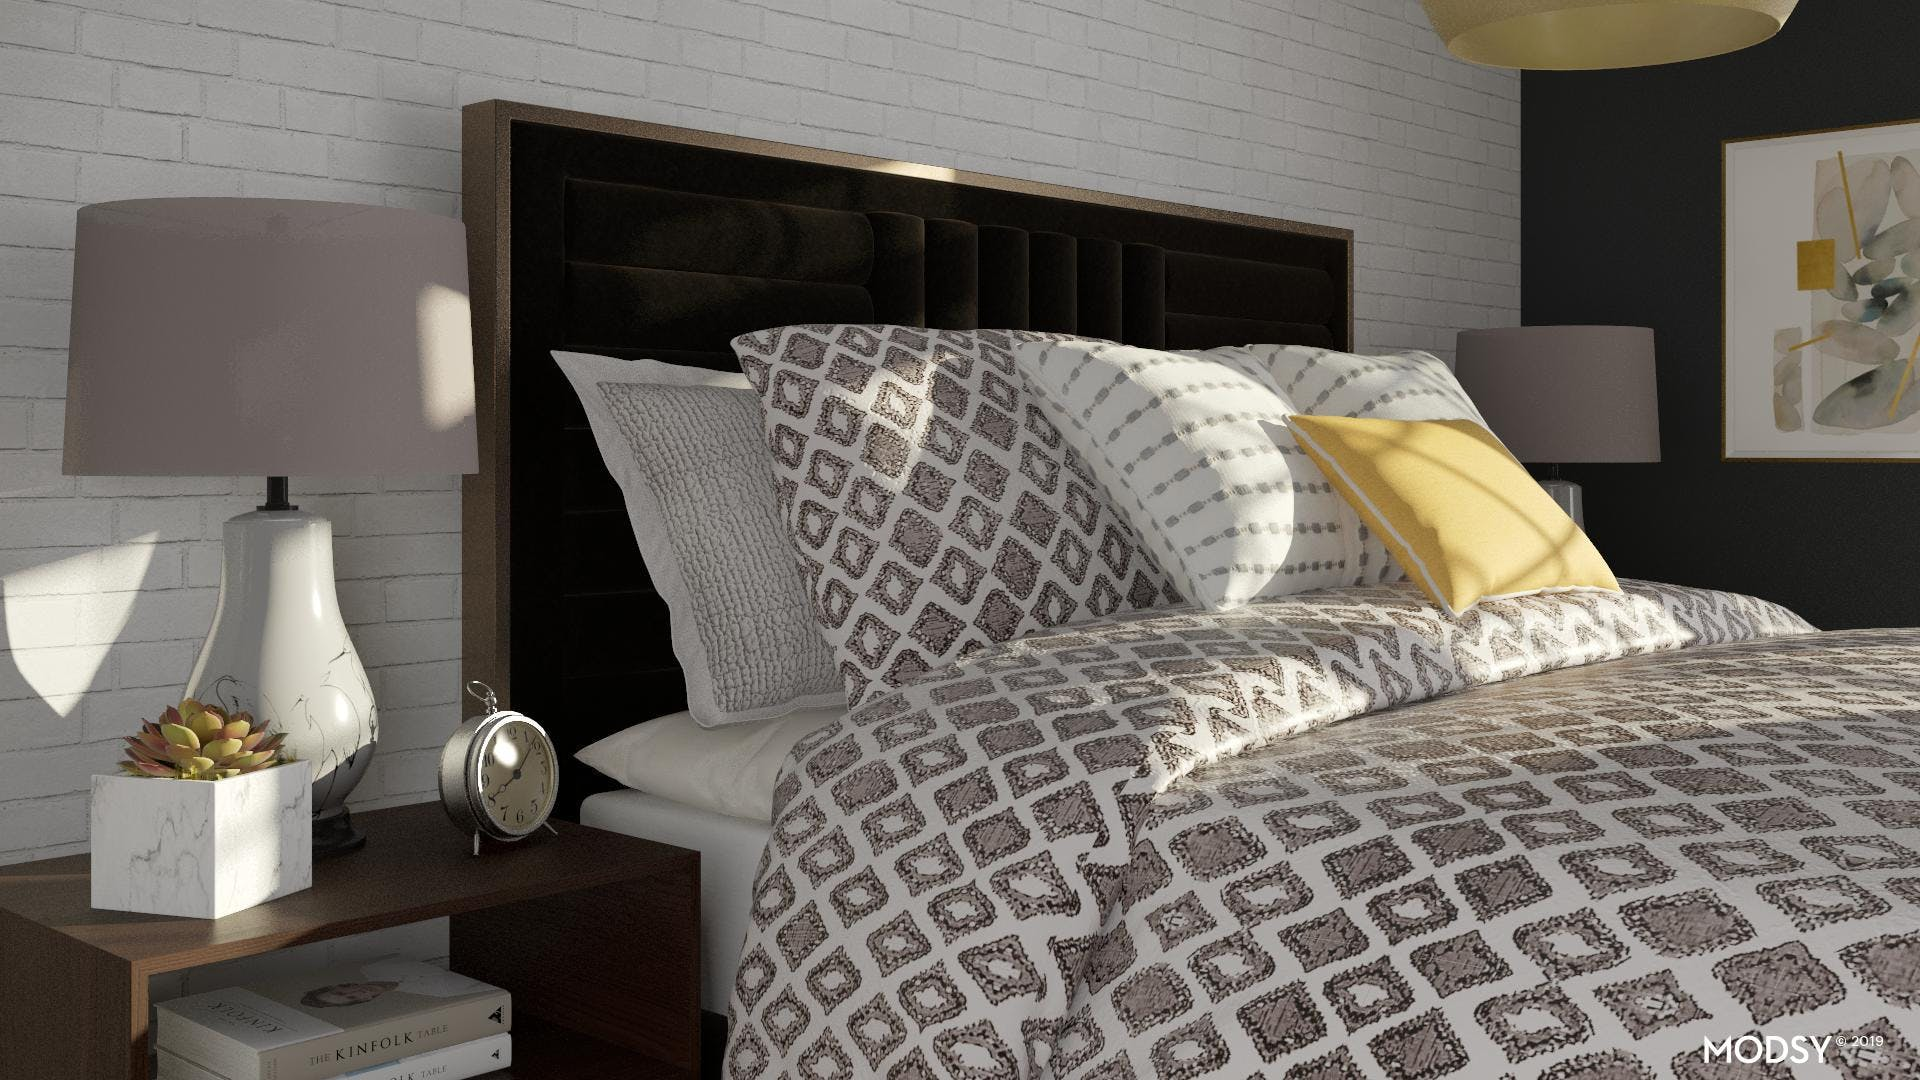 Upholstered Bed: More Than Just A Pretty Face